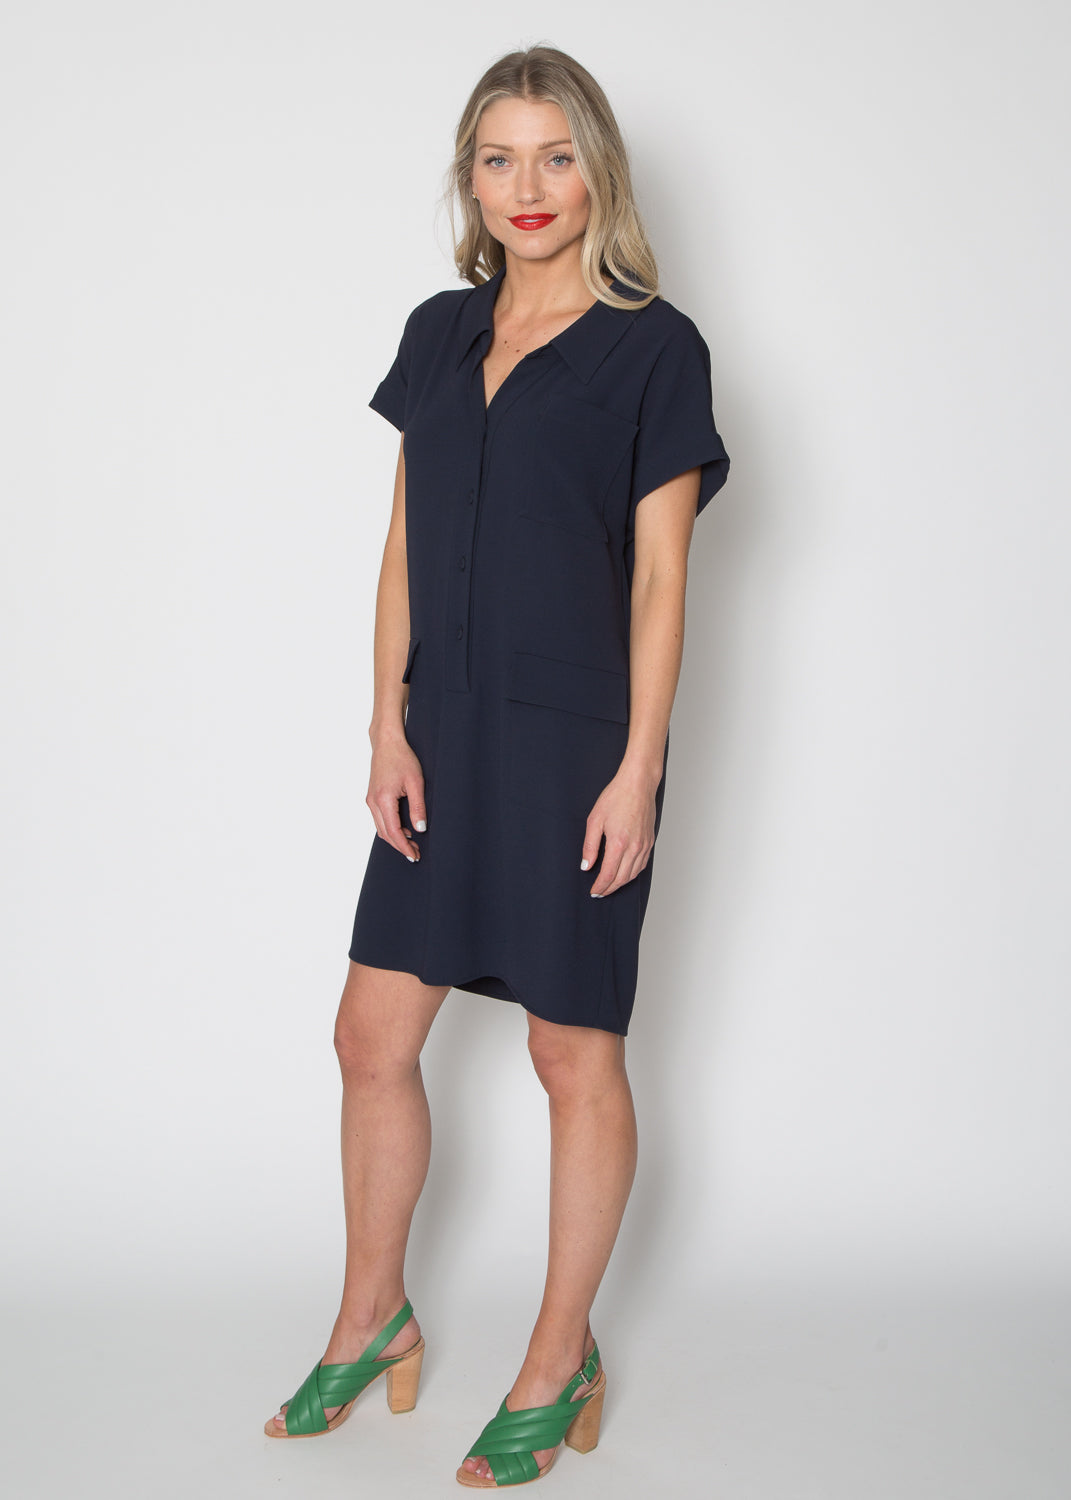 Paule Ka Double Pocket Shift Dress